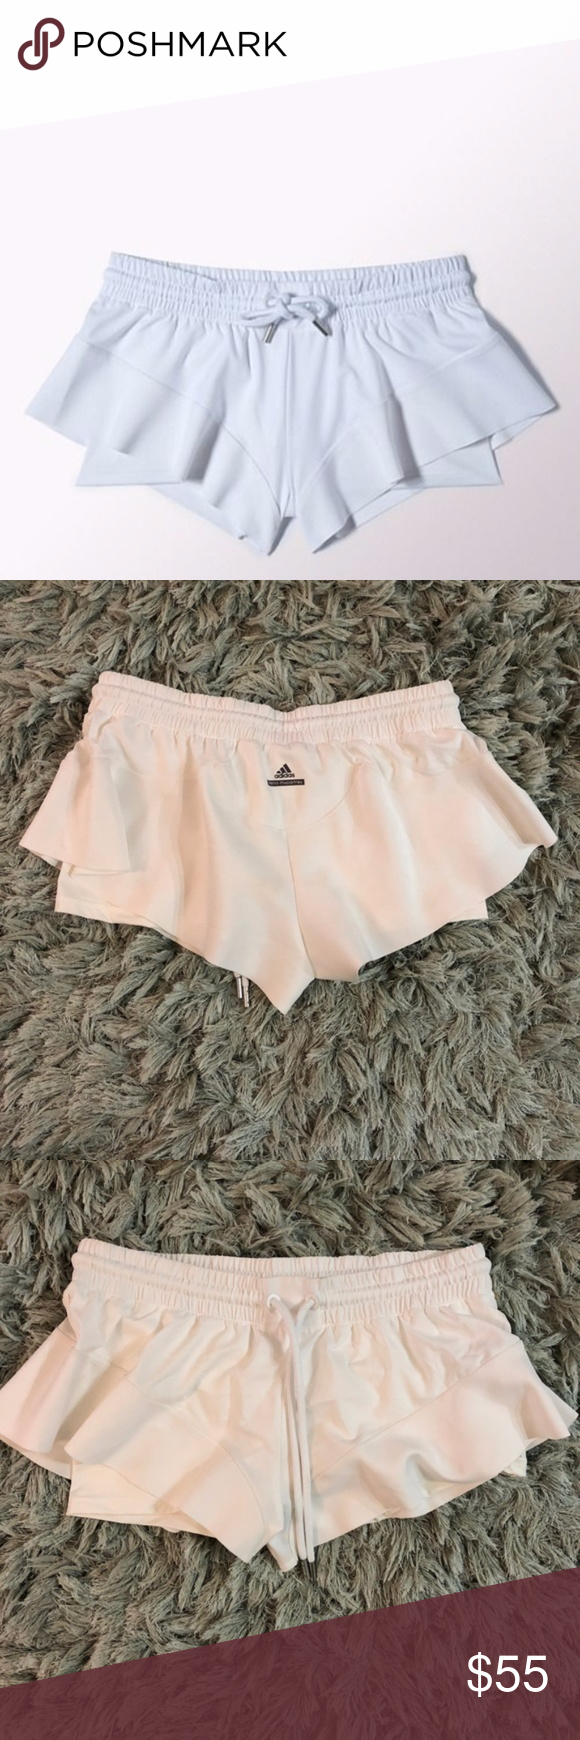 Adidas Stella McCartney Barricade Shorts Large NWT Adidas Stella McCartney Barricade shorts. Size Large. The sleek cuts and precise lines of the adidas by Stella McCartney tennis collection echo the exceptional feminine tailoring for which Stella is known and loved. A style worn by tennis pros Caroline Wozniacki and Garbiñe Muguruza, this Barricade Skirt stands up to the heat in breathable, quick-drying fabric. Adidas by Stella McCartney Shorts